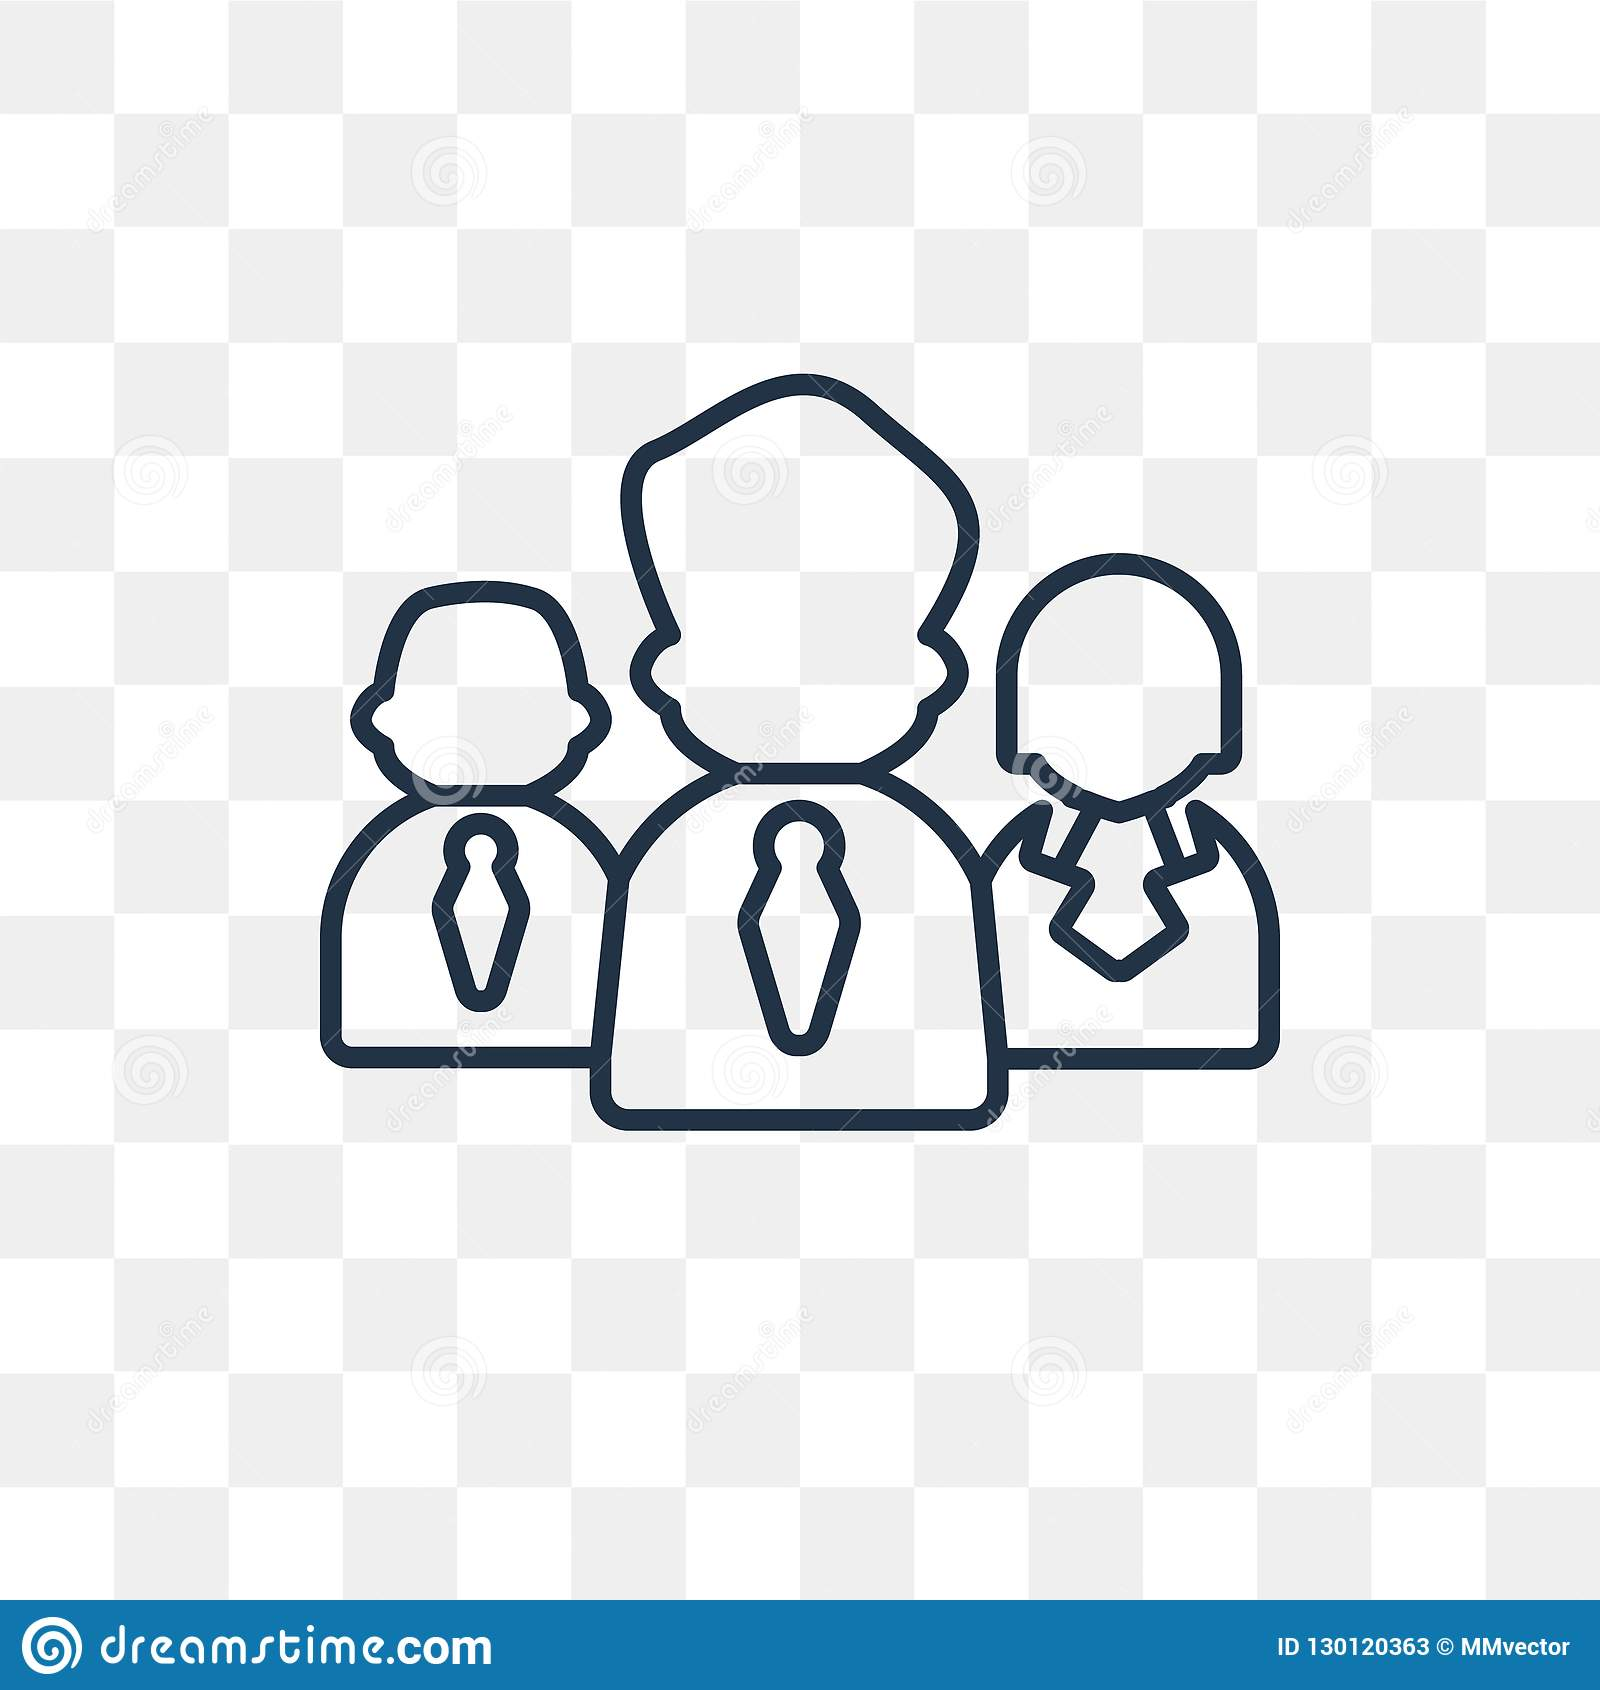 Leadership Vector Icon Isolated On Transparent Background Linear Leadership Transparency Concept Can Be Used Web And Mobile Stock Vector Illustration Of Teamwork Friendship 130120363